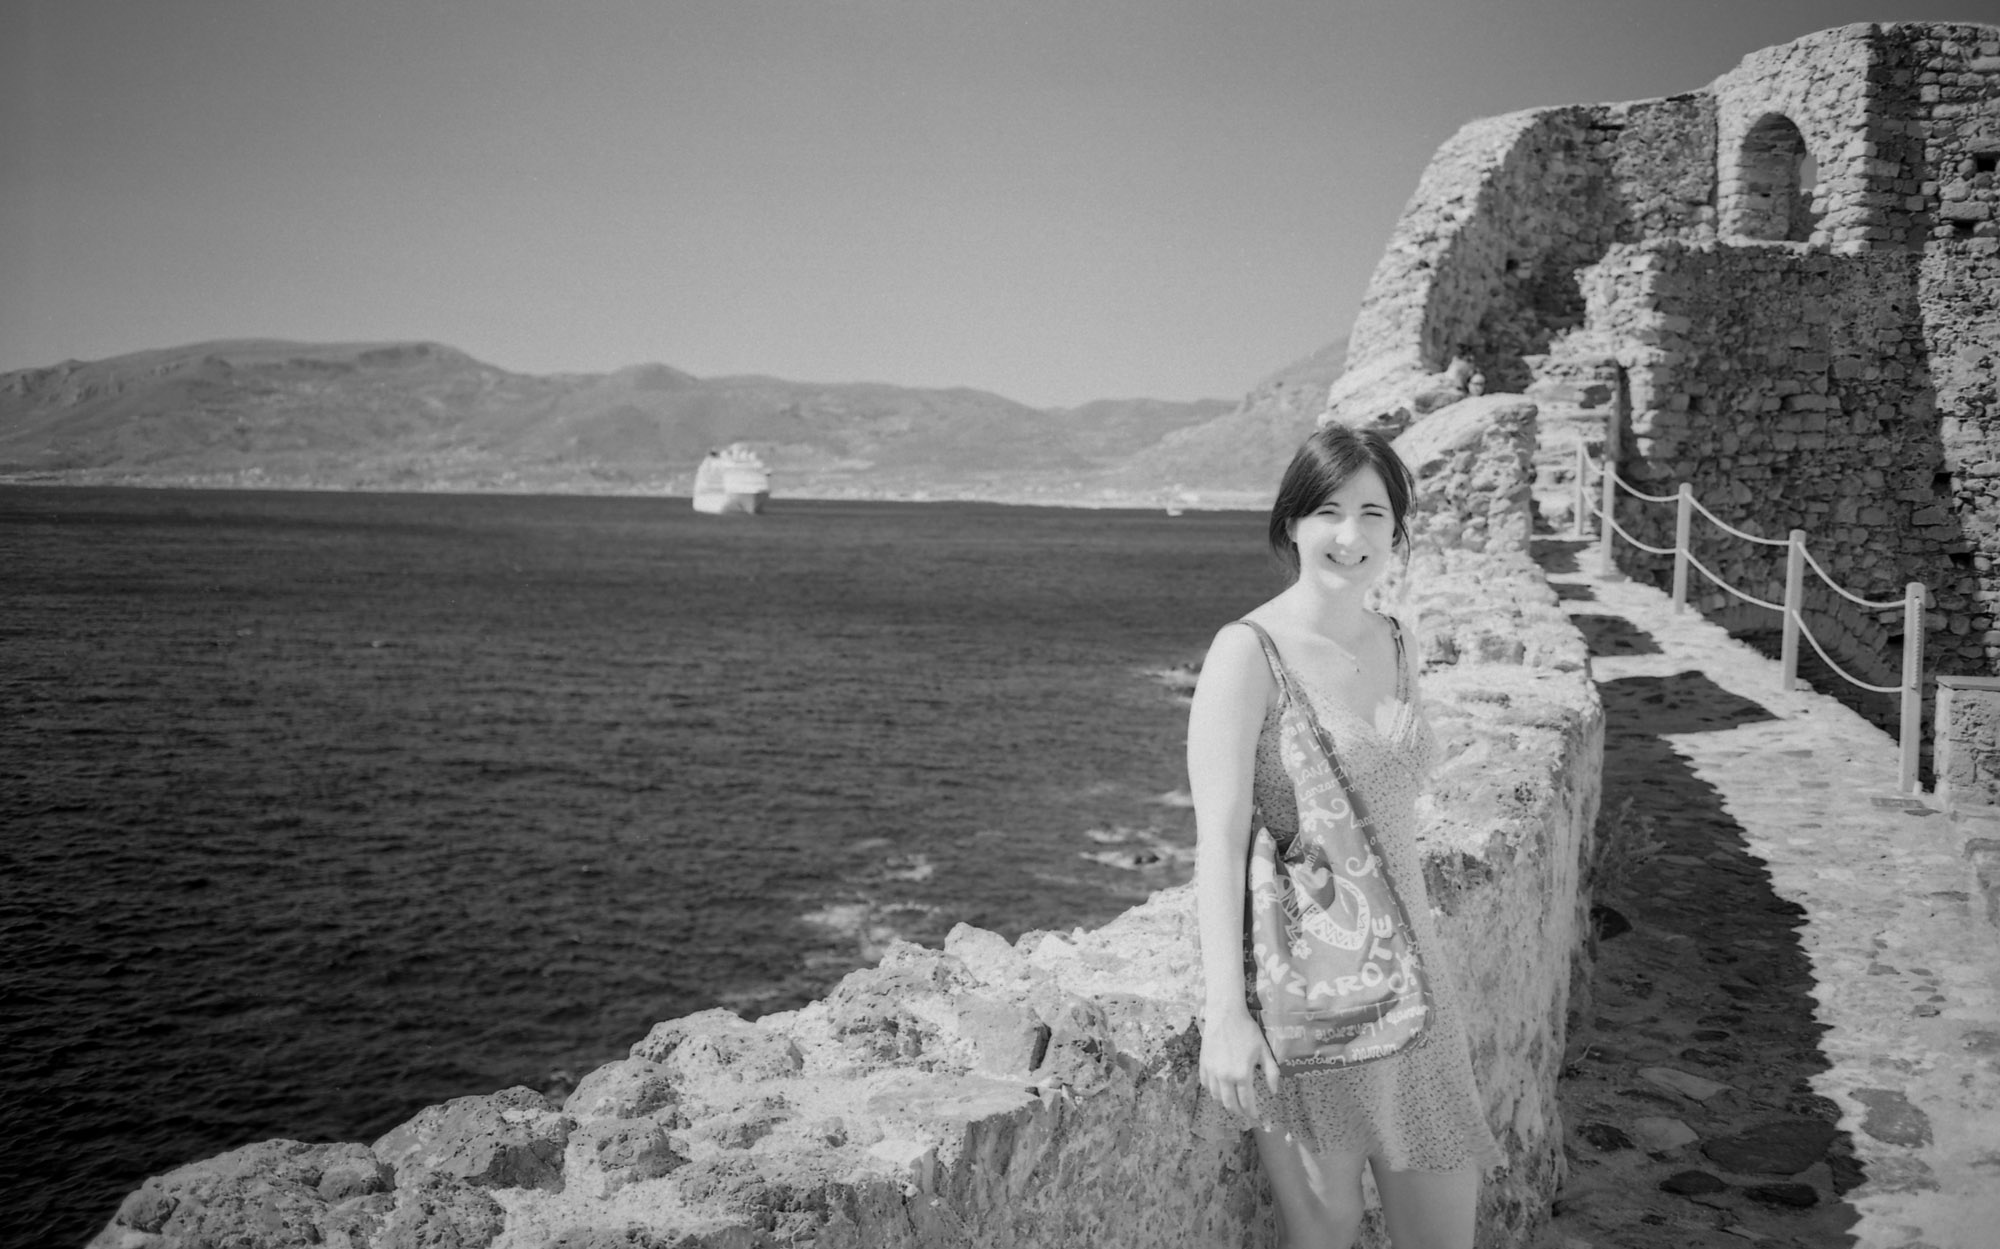 This one shows the pale skin typical of IR film.